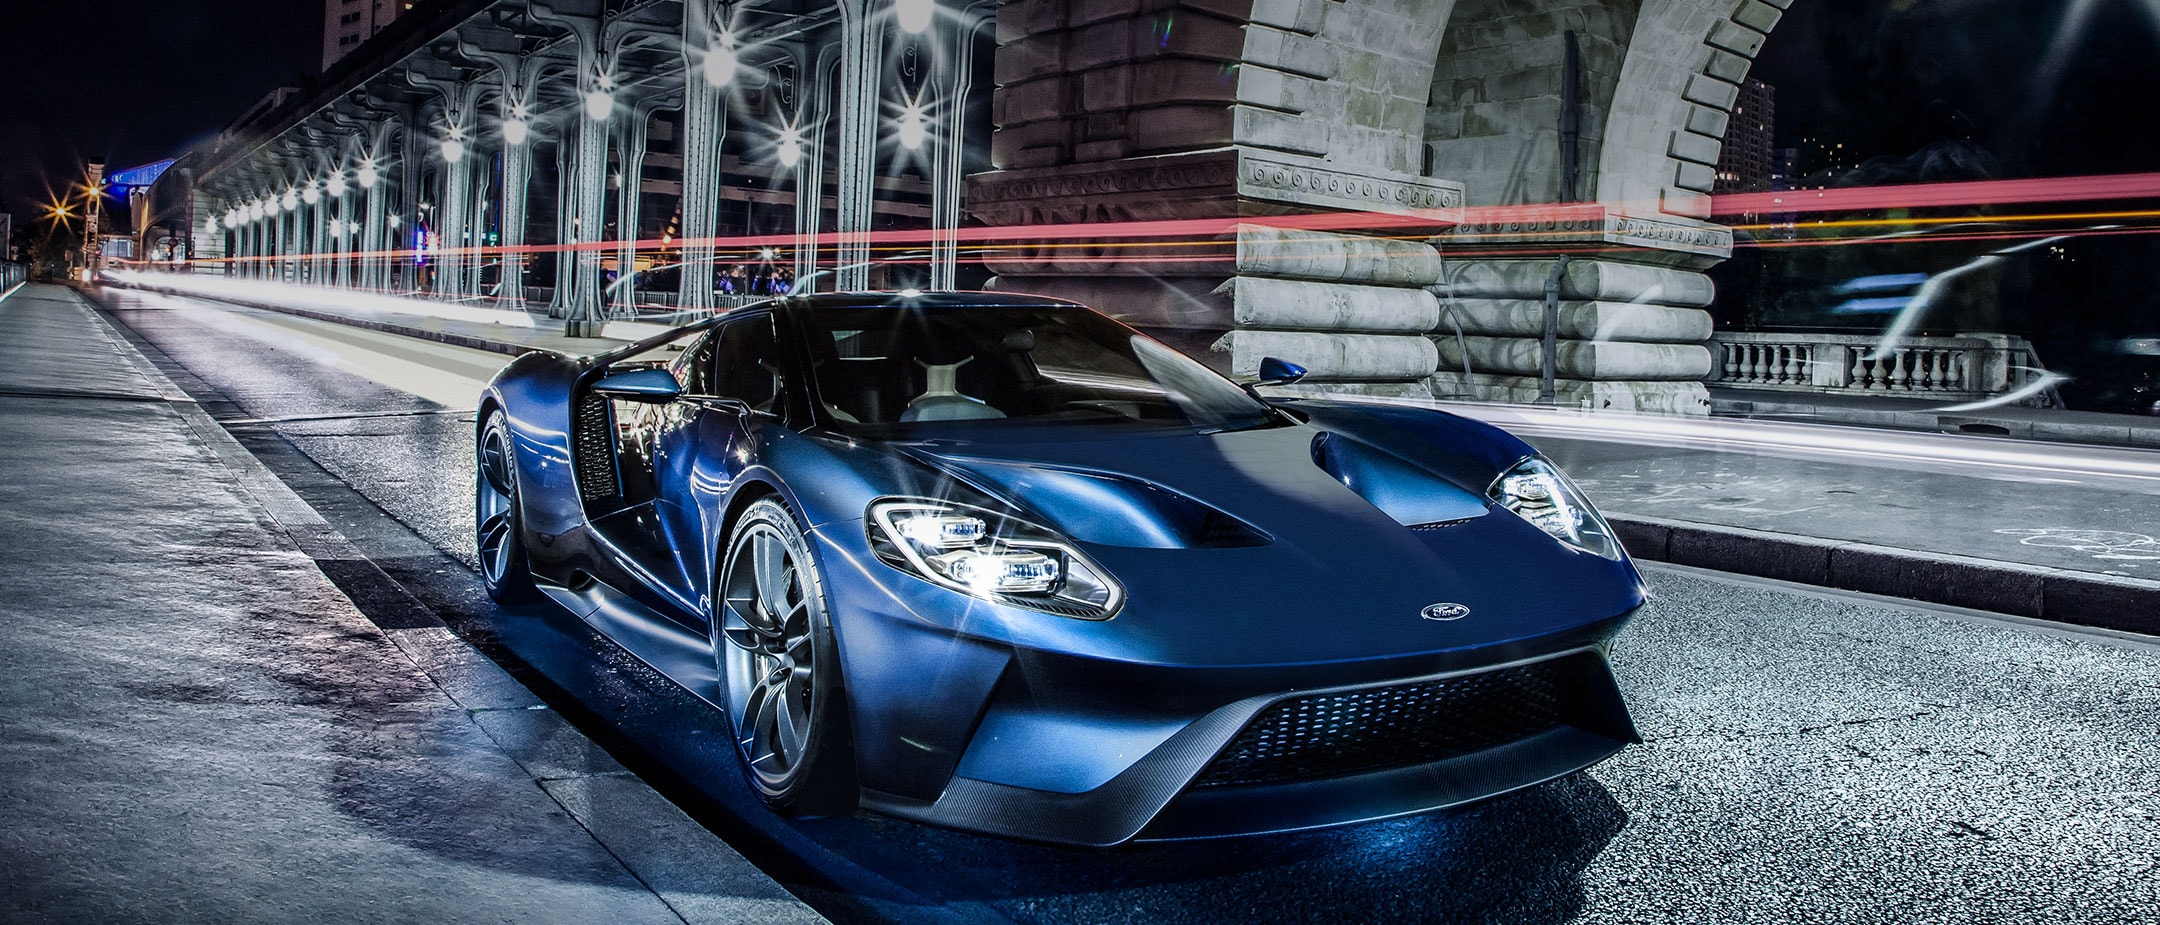 Ford GT city street